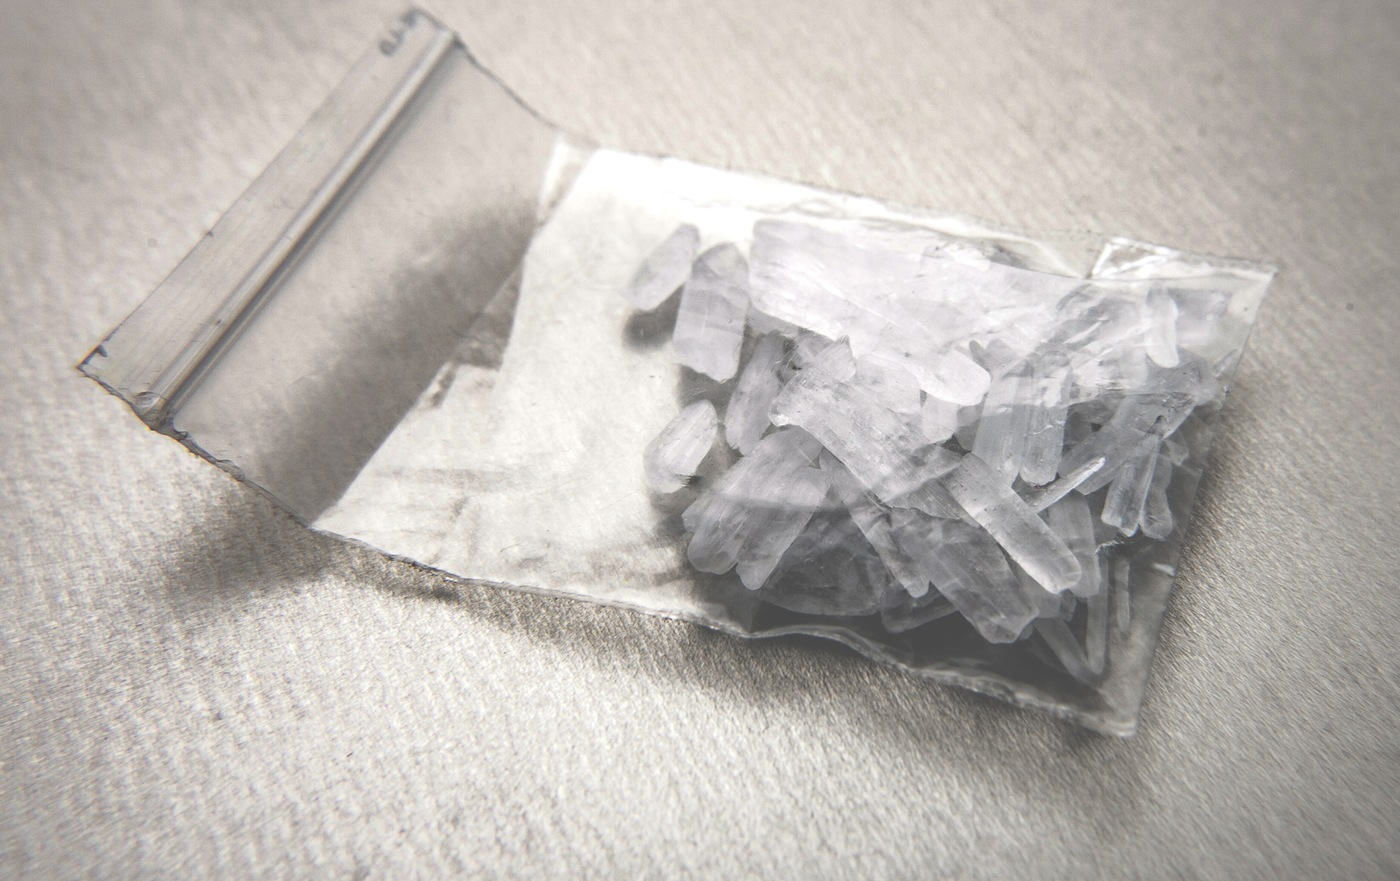 Stock image of a bag of methamphetamine in the form known as crystal meth.